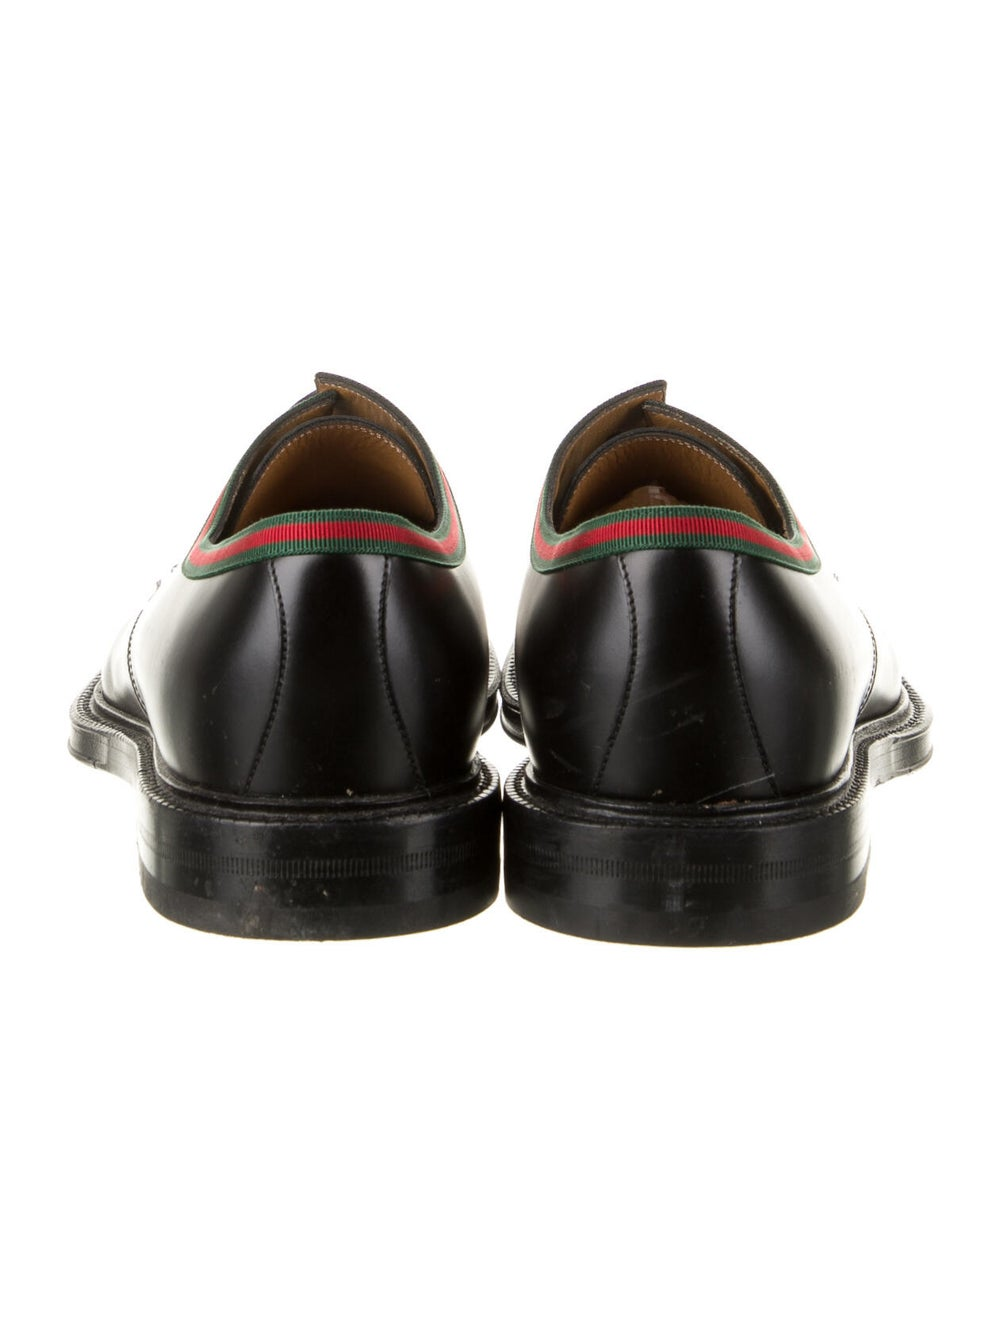 Gucci Web Accent Leather Derby Shoes Black - image 4